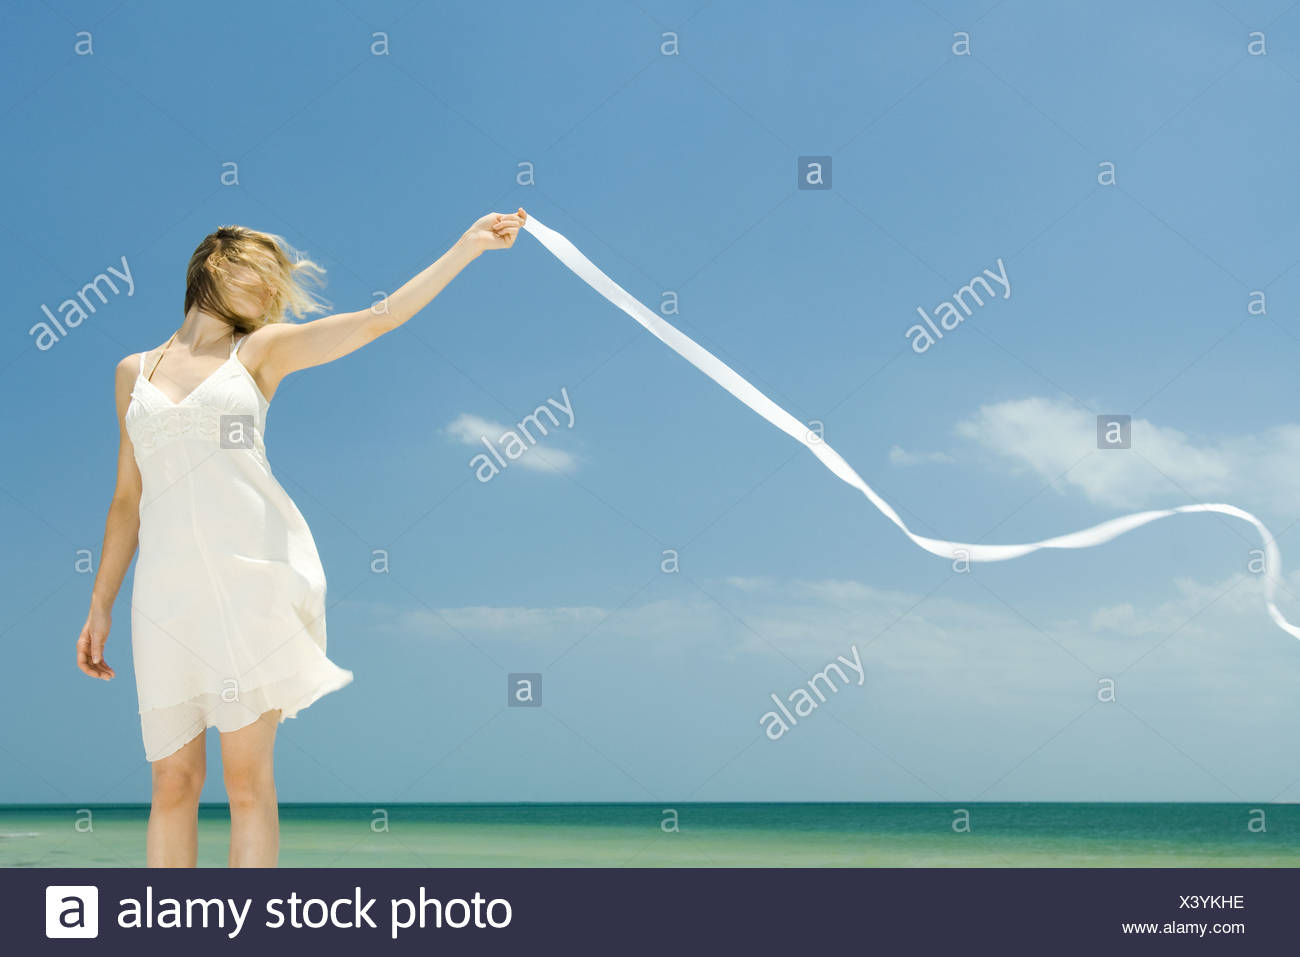 Woman in sundress holding up ribbon in breeze, hair covering face - Stock Image